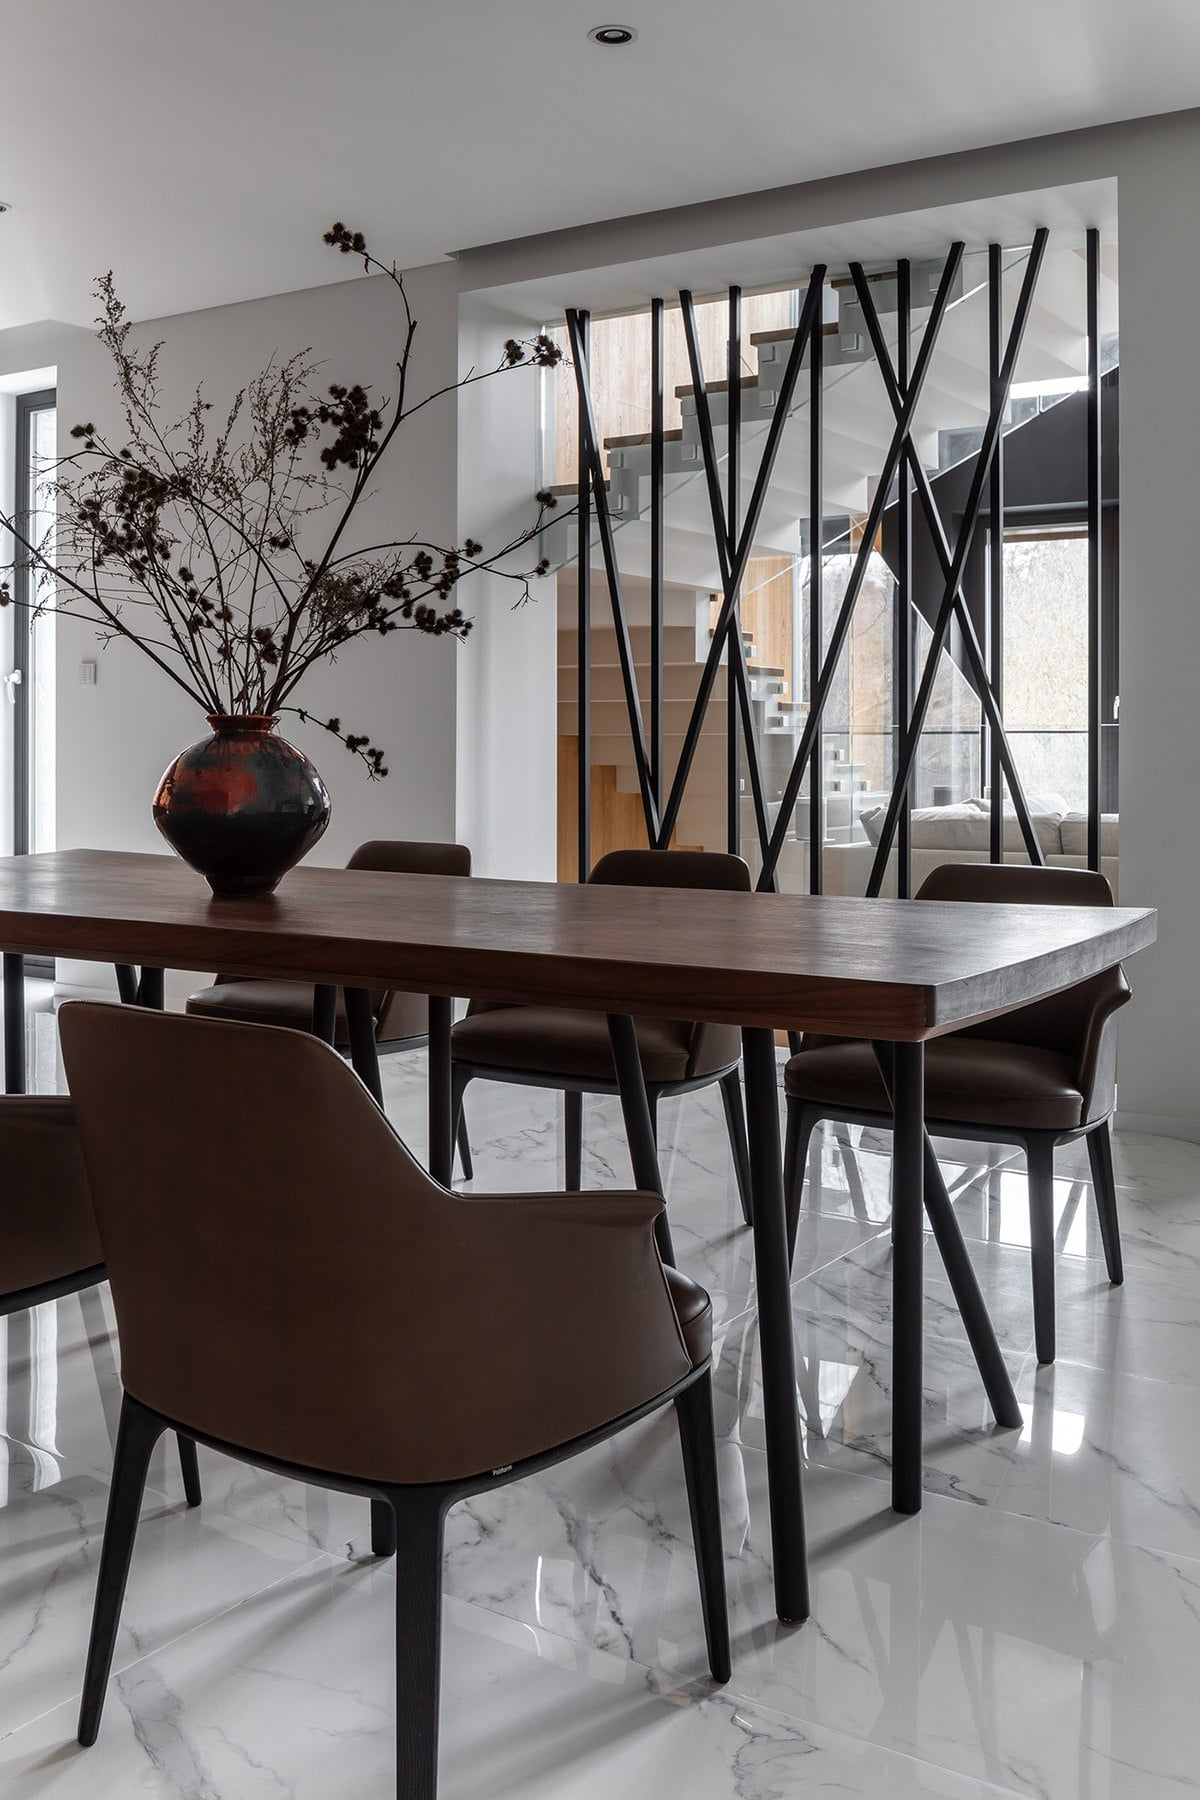 The lovely dining area is separated from the staircase with a decorative wall of thin black rods that still give a see-through view of the staircase.